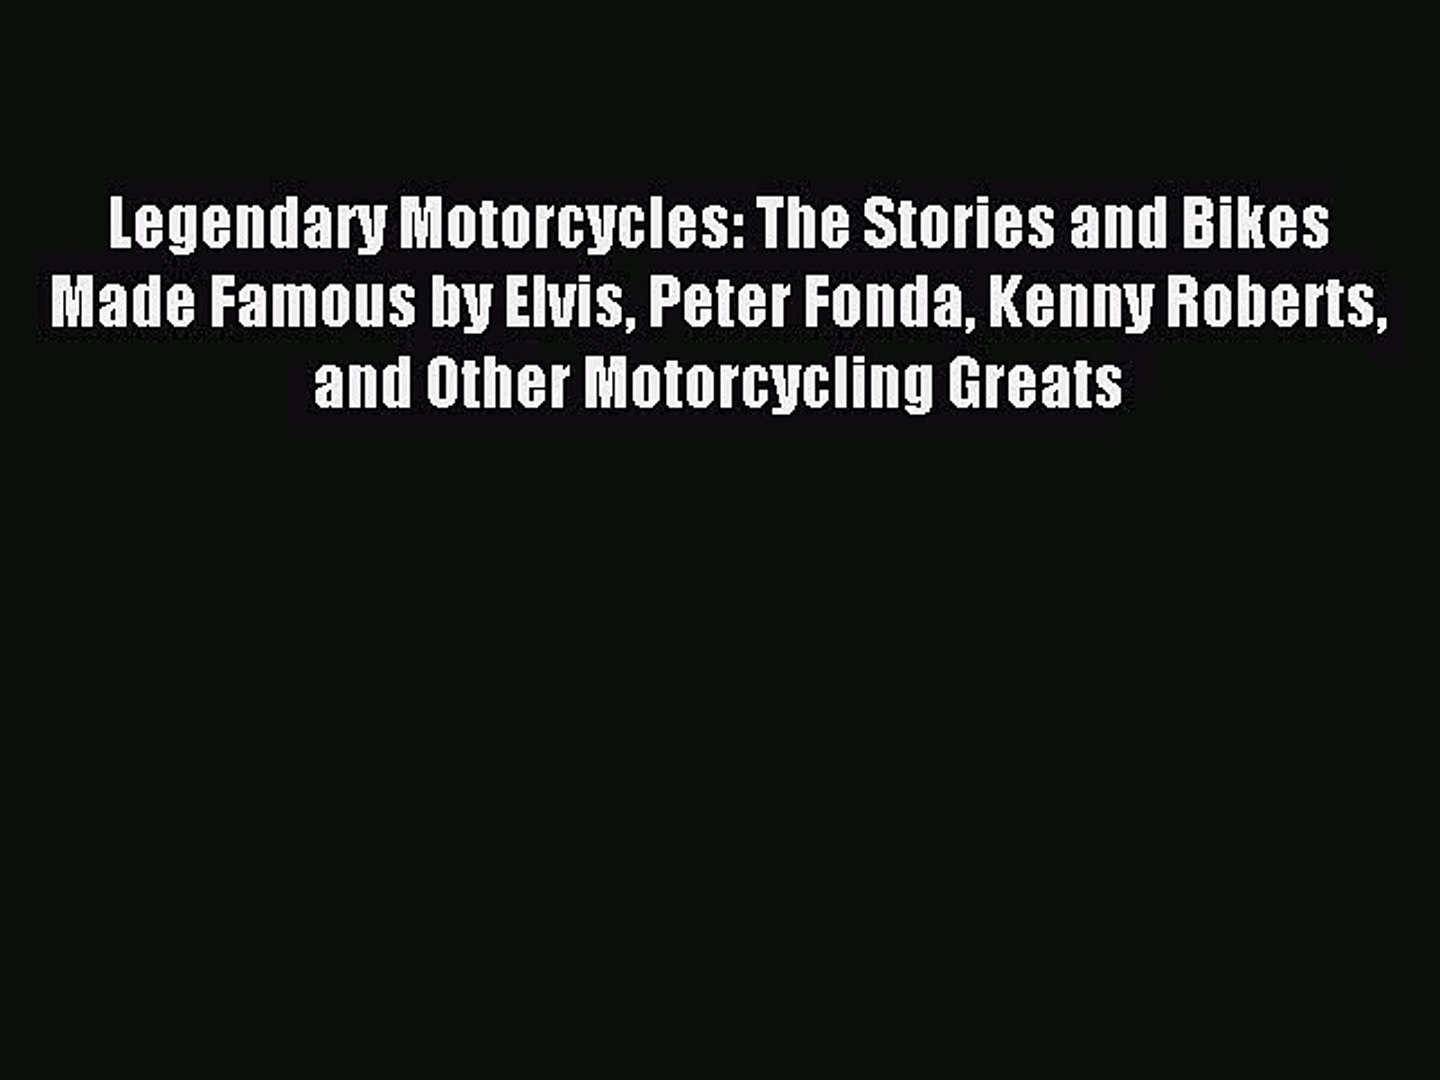 (PDF Download) Legendary Motorcycles: The Stories and Bikes Made Famous by Elvis Peter Fonda